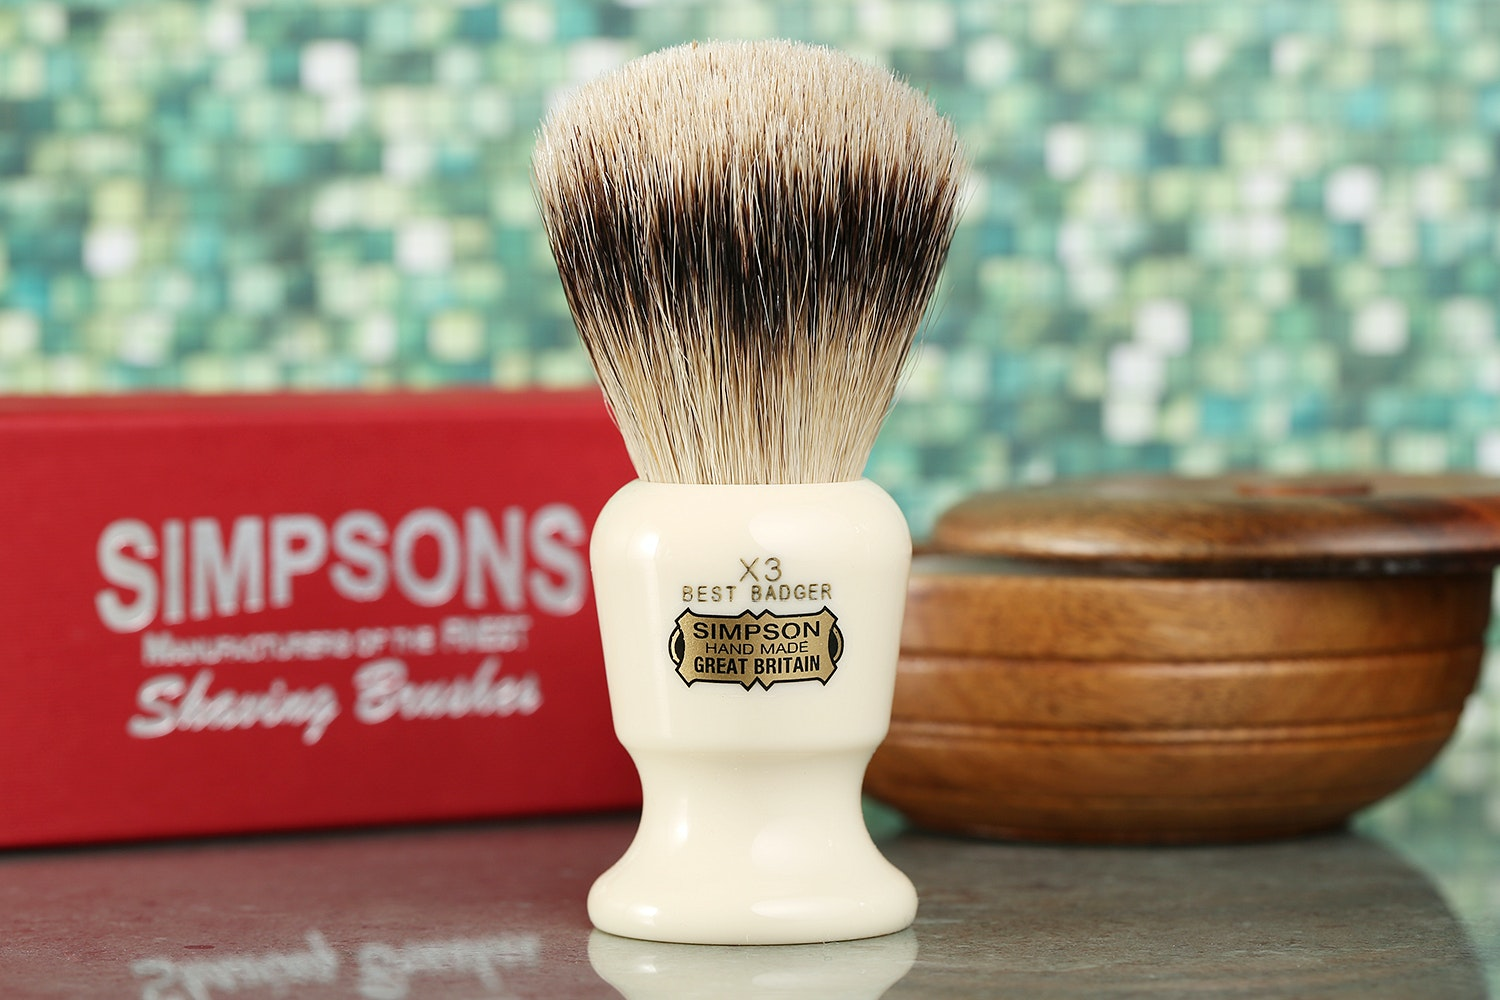 Simpson Commodore X3 Best Badger Shaving Brush